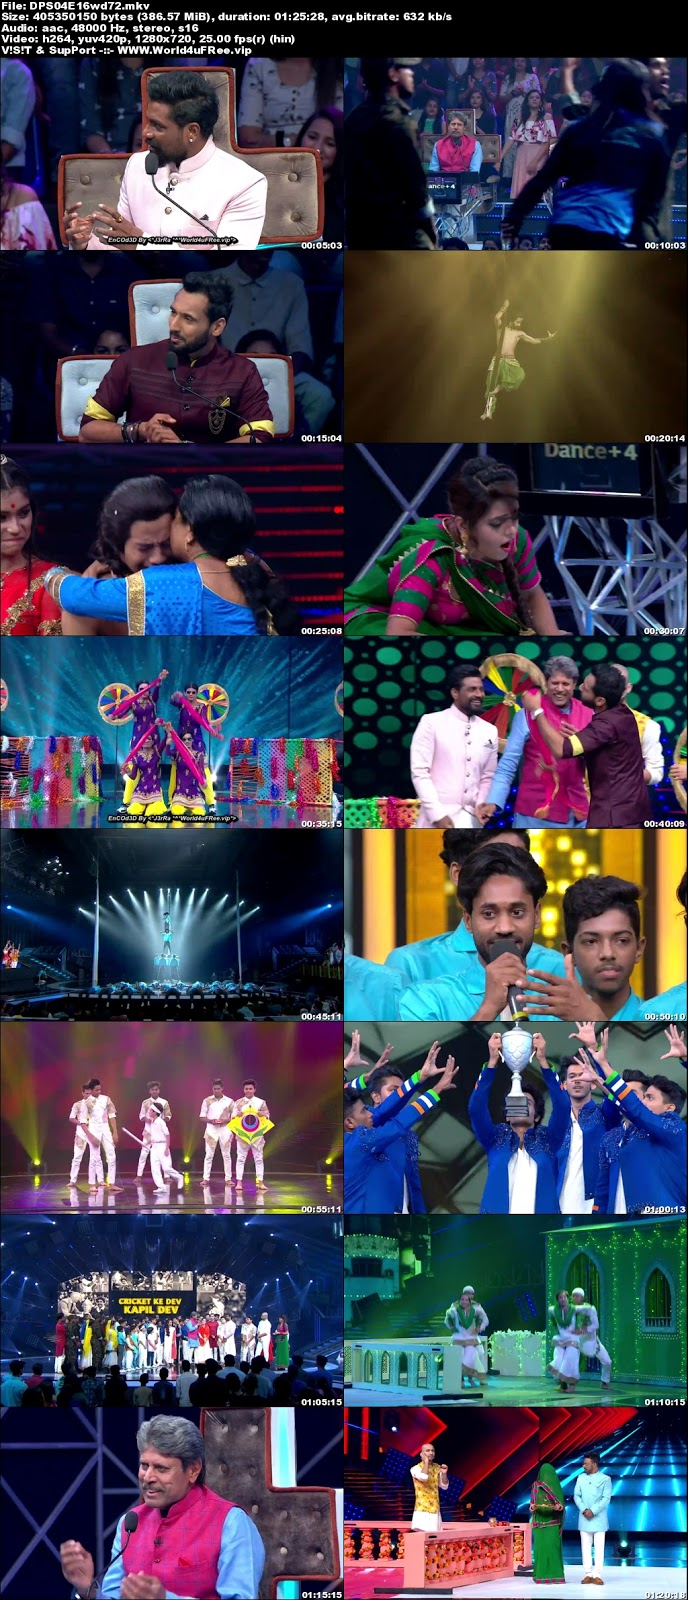 Dance Plus S4 01 December 2018 720p WEBRip 300Mb x264 world4ufree.vip tv show Dance Plus 4 2018 hindi tv show Dance Plus 4 2018 Season 4 Star Plus tv show compressed small size free download or watch online at world4ufree.vip